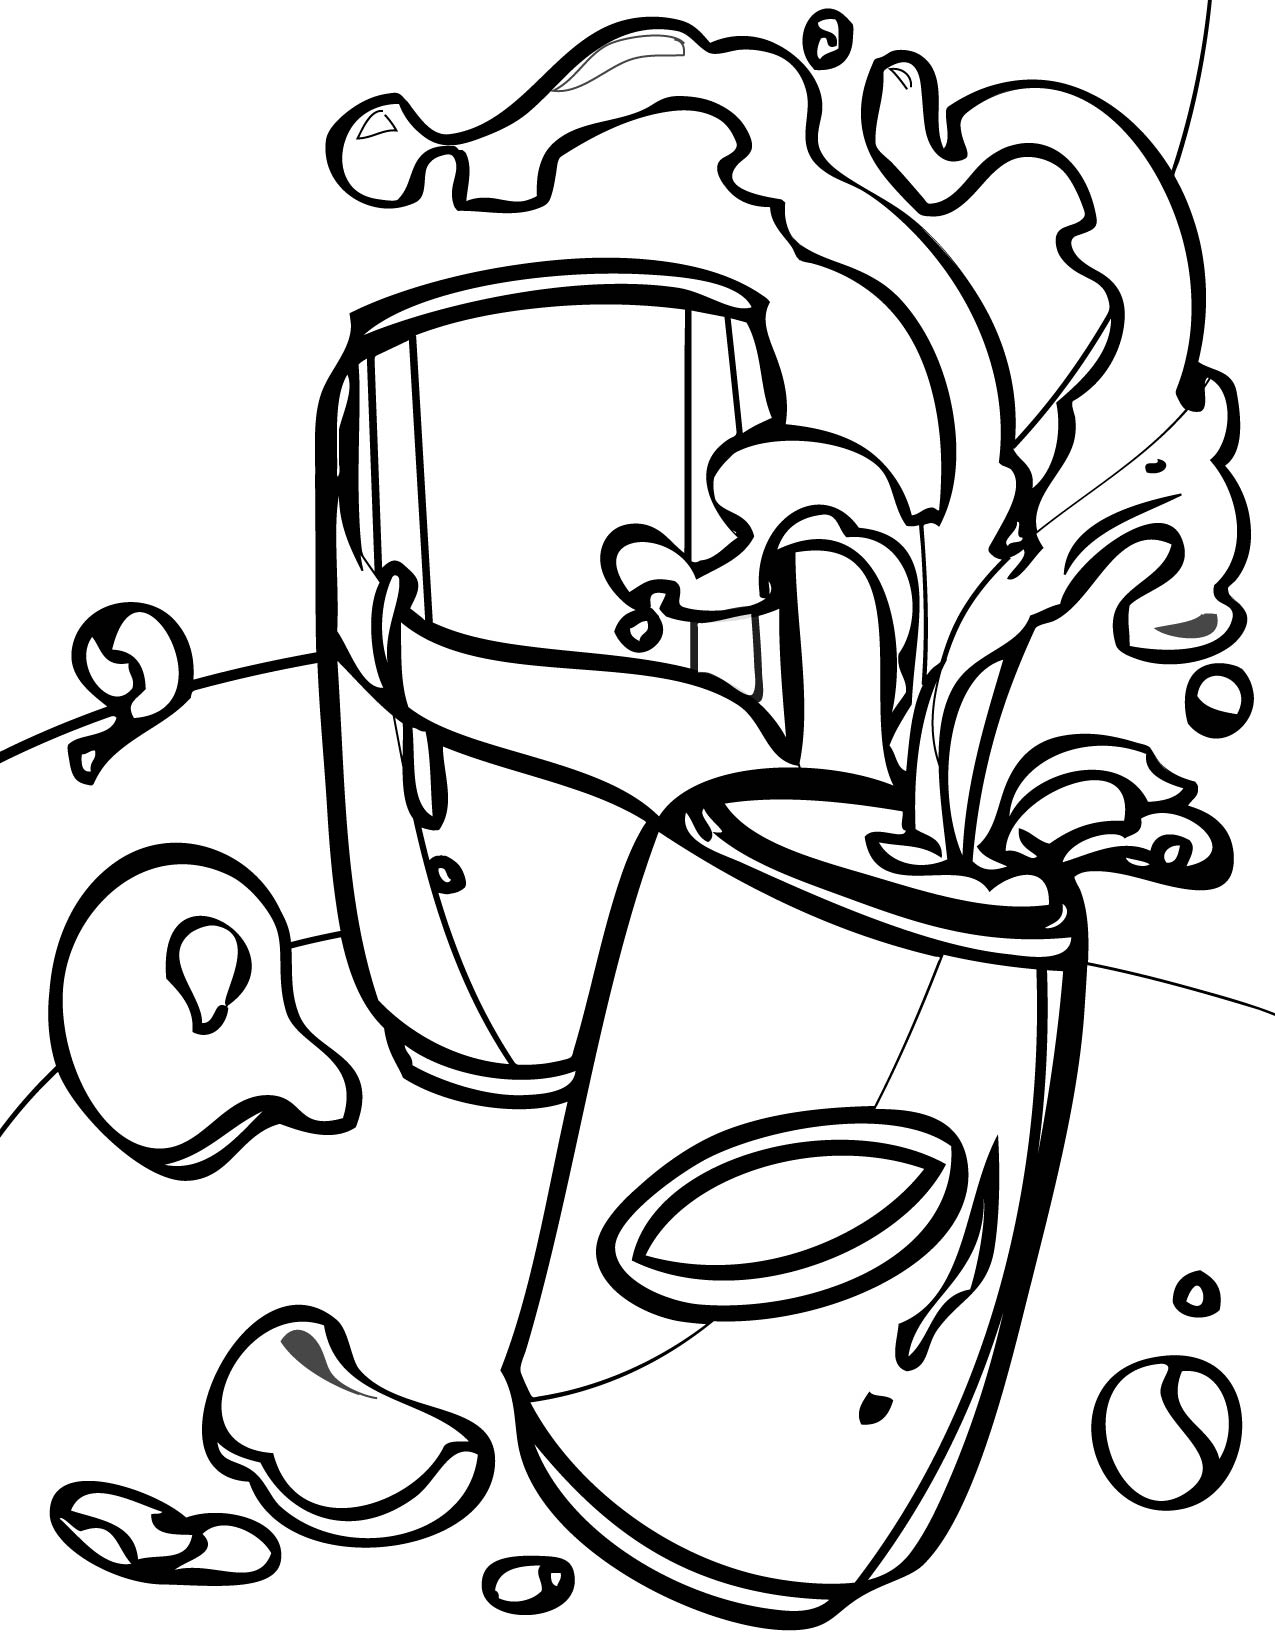 no soda coloring pages - photo#3